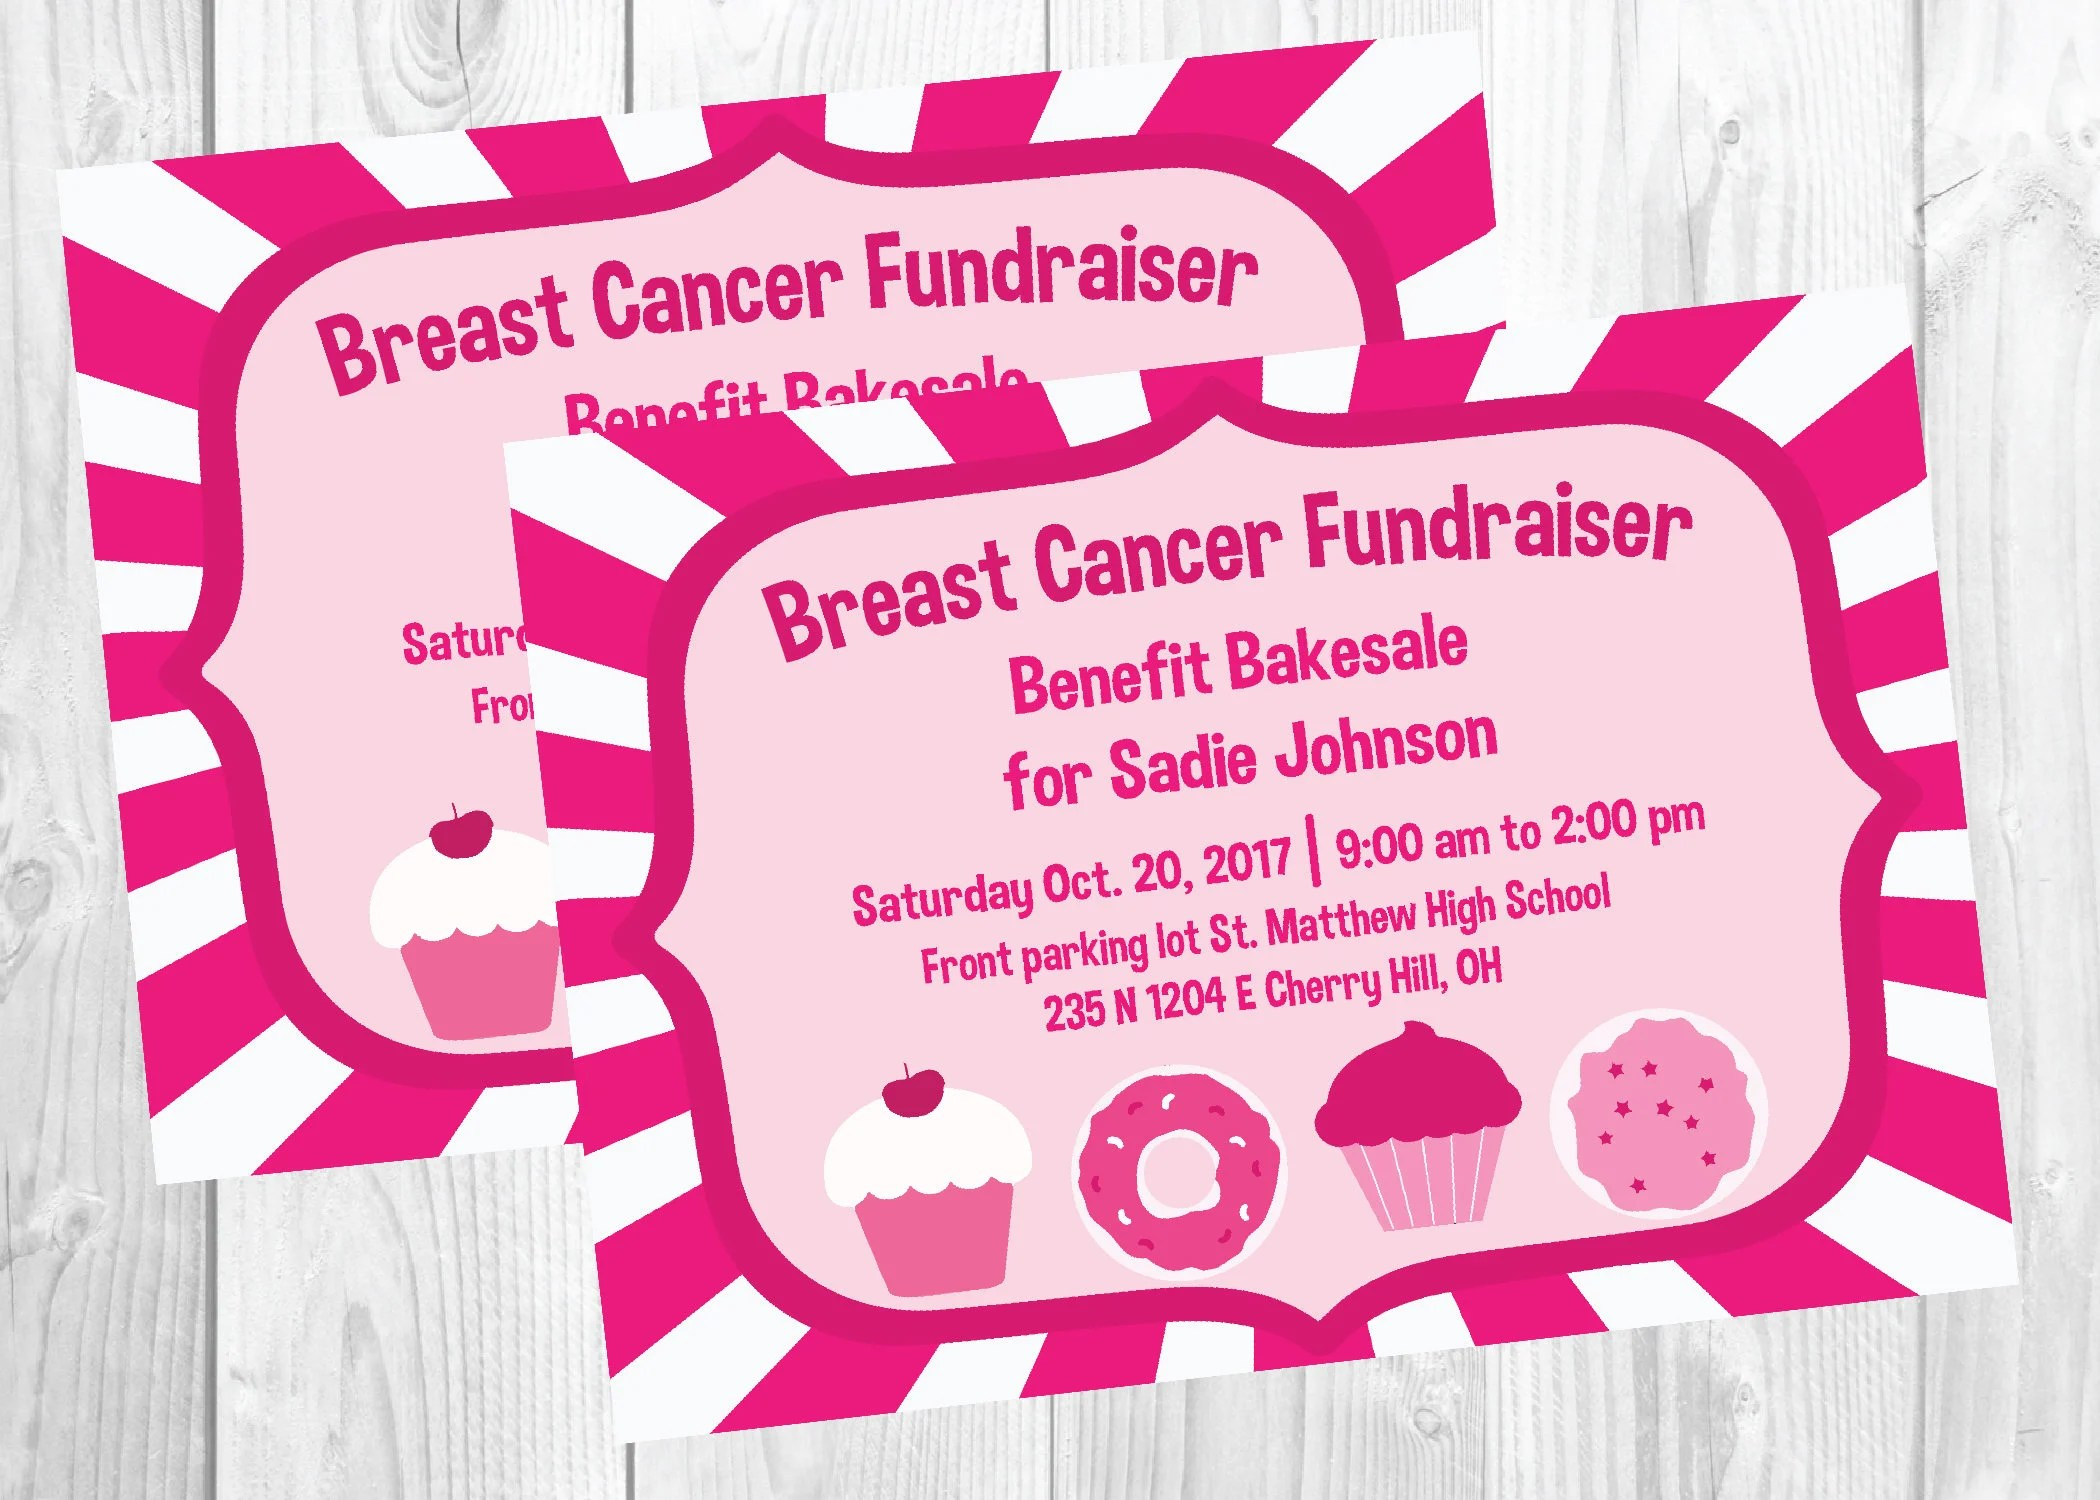 Bake Sale Flyer / Breast Cancer Fundraiser / Race for the Etsy